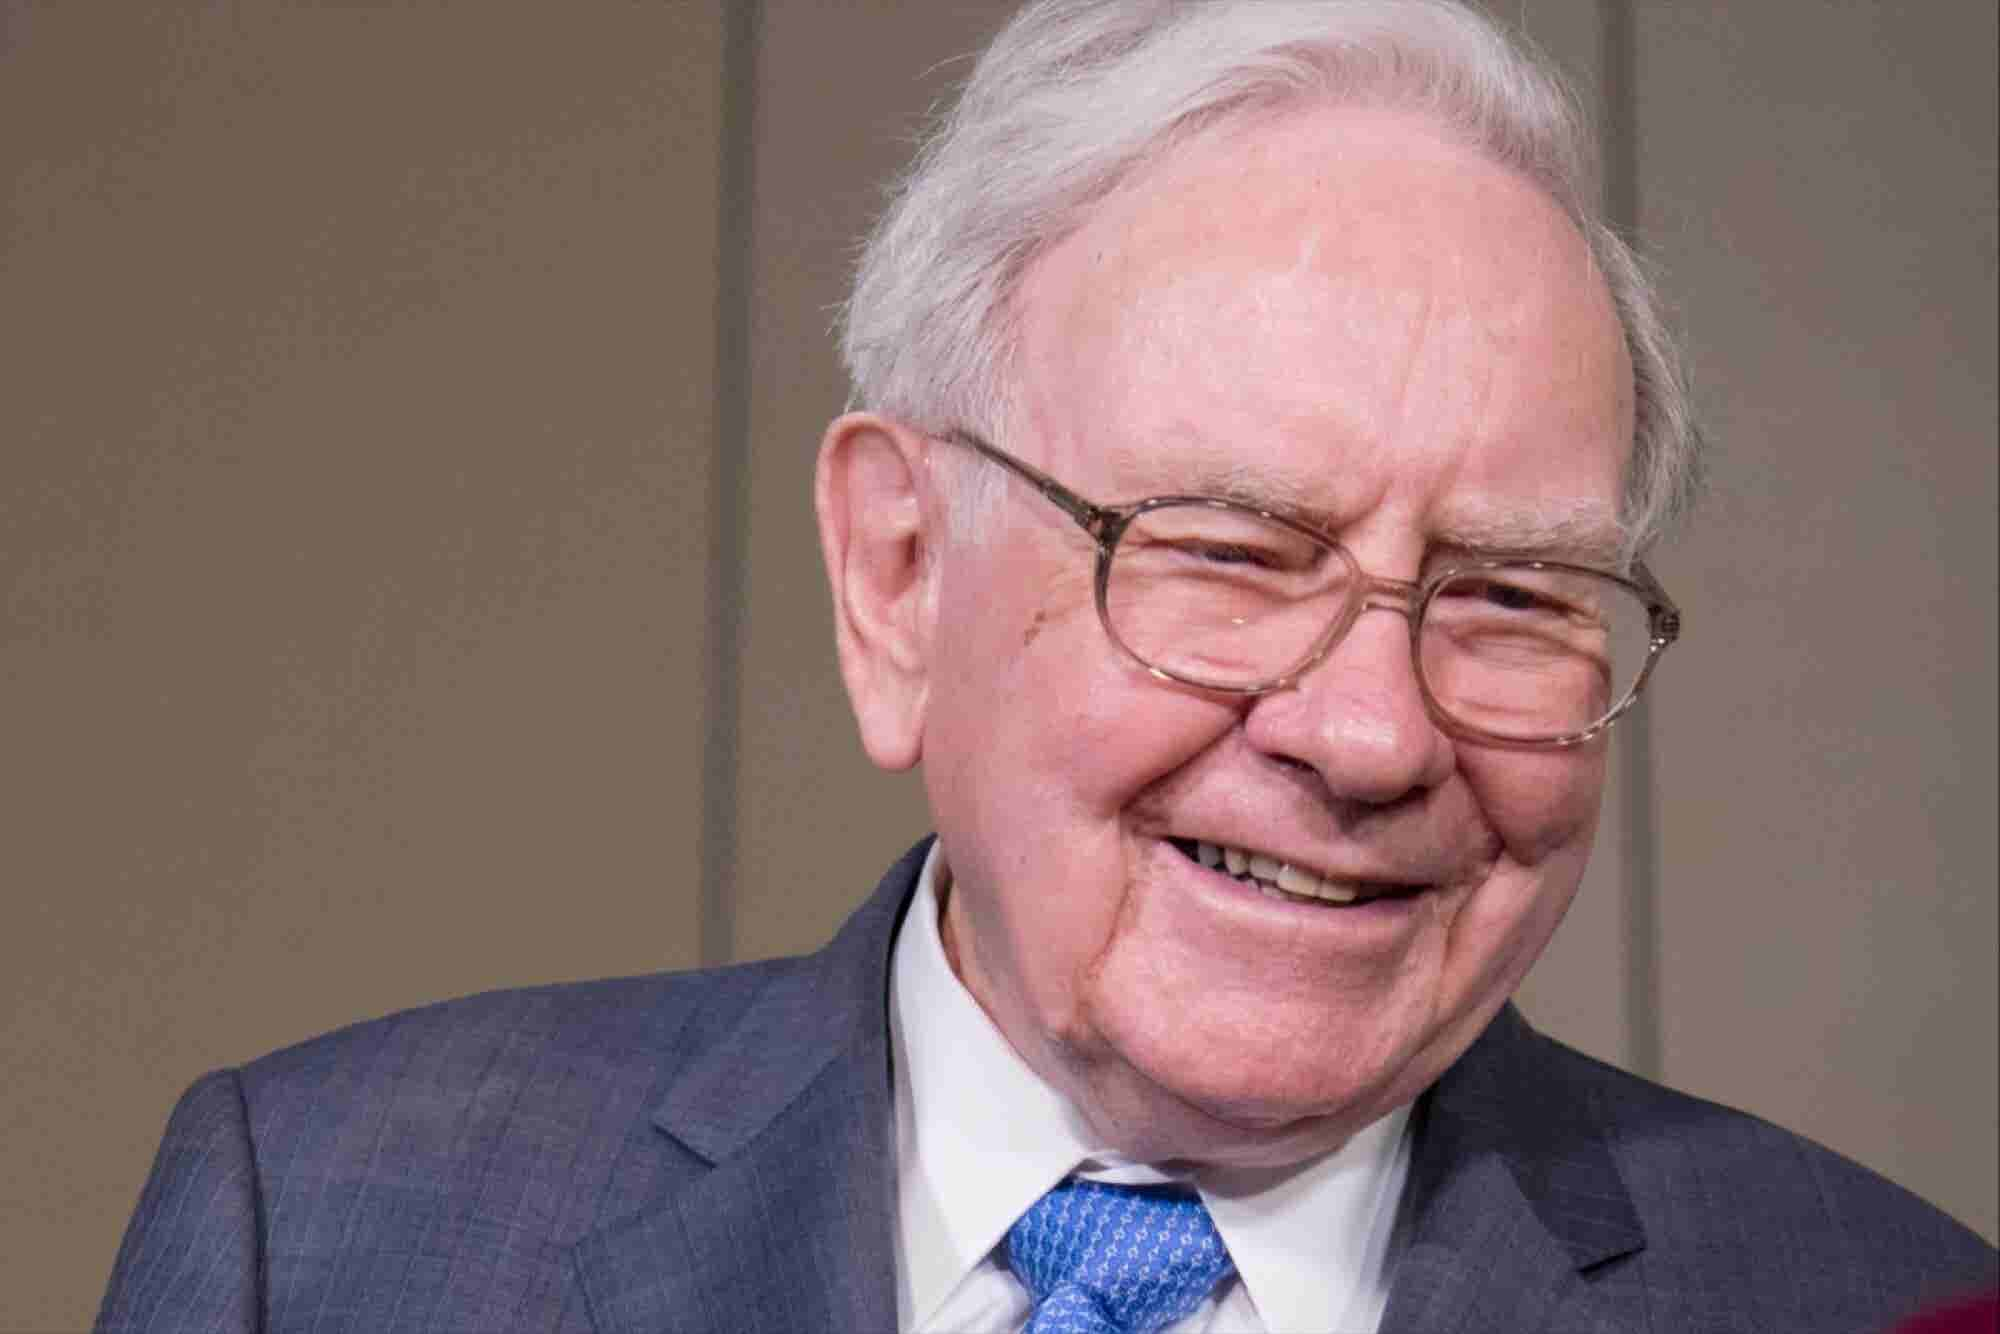 7 Smart Things Business People Can Learn From Warren Buffett's Recent Q&A